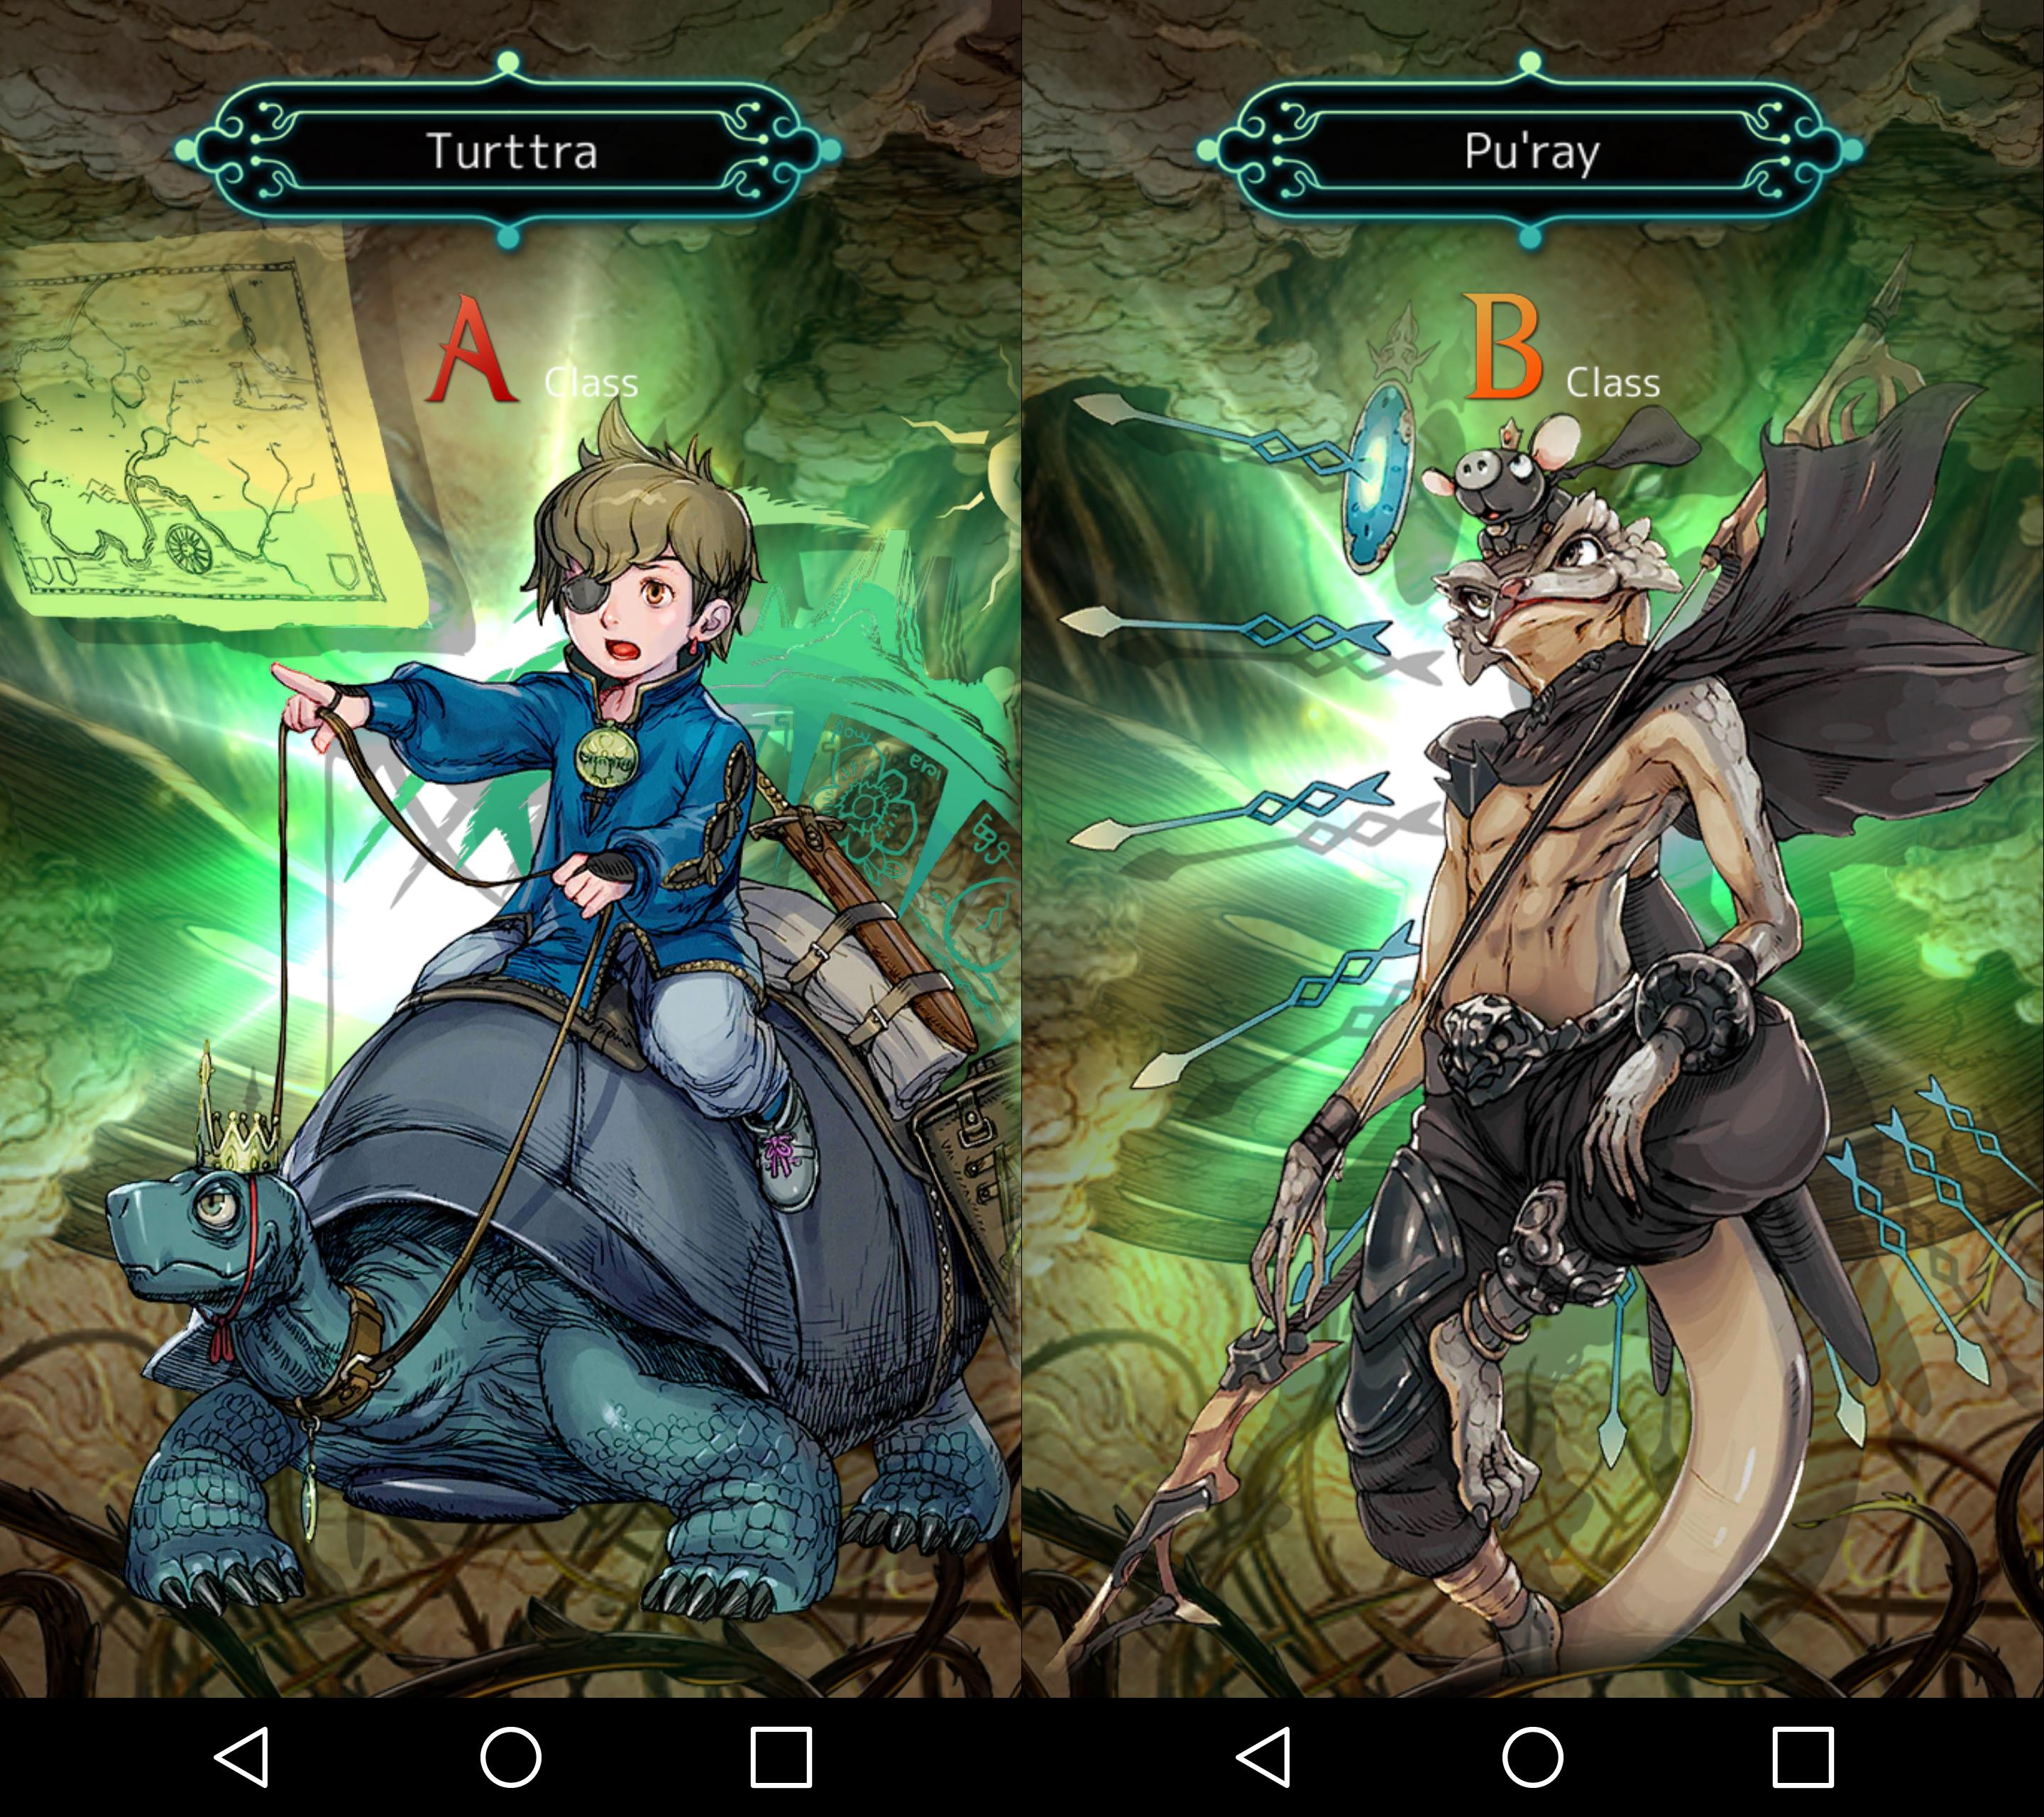 Terra Battle 2 removed from North American iOS/Android app stores